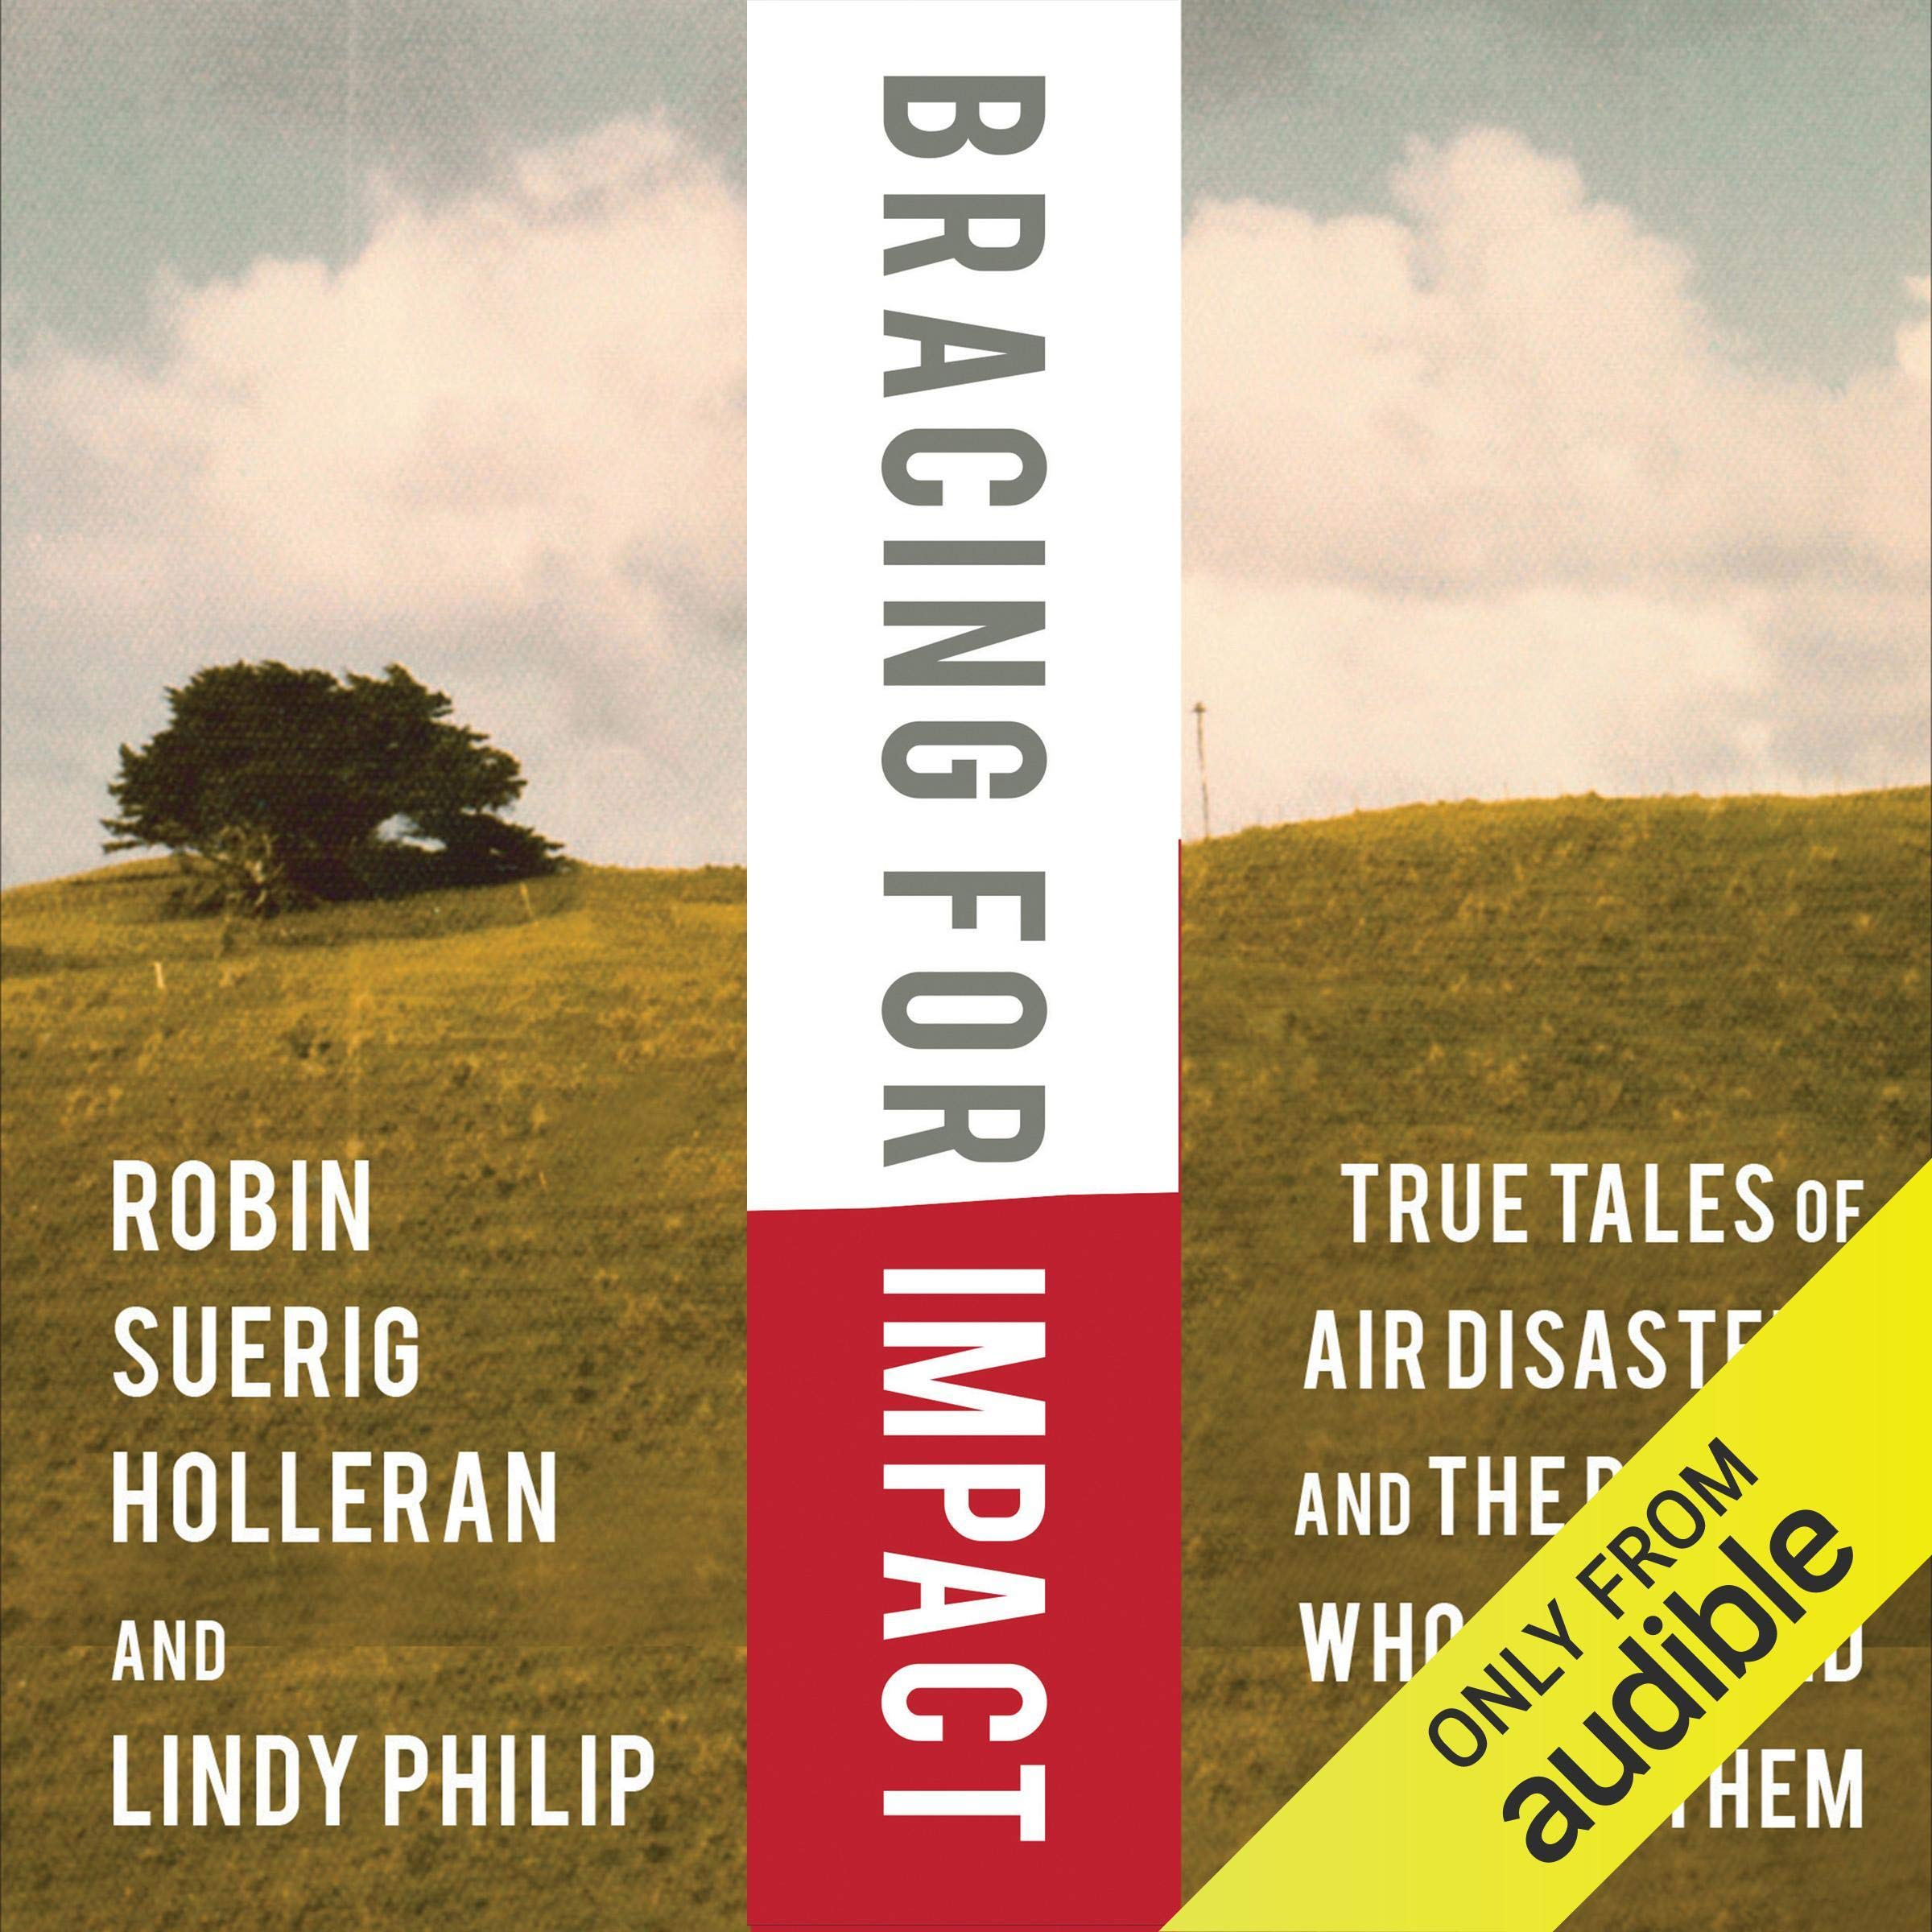 Bracing for Impact: True Tales of Air Disasters and